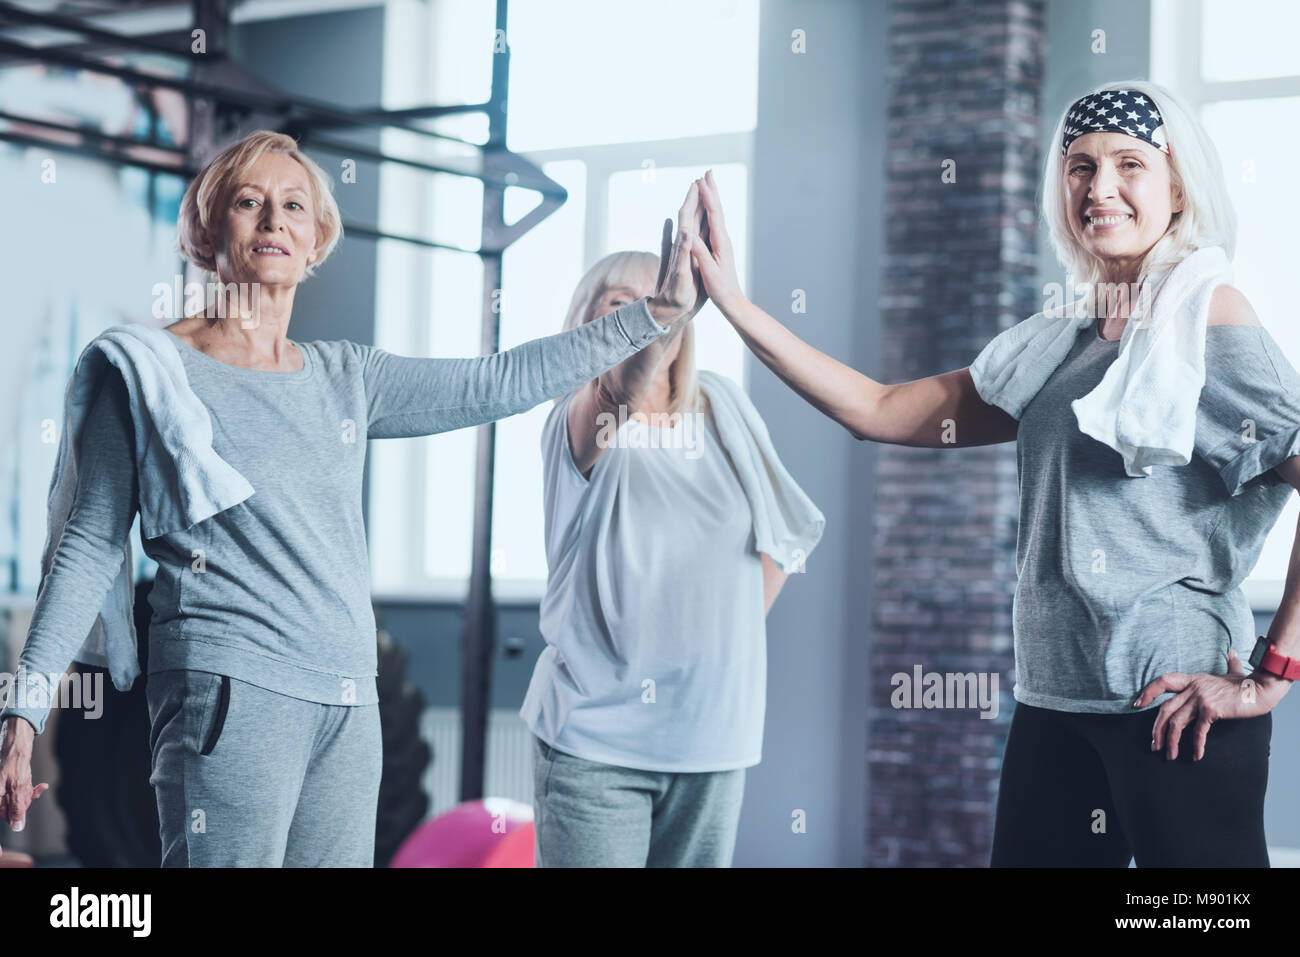 Mature women joining hands together at gym - Stock Image